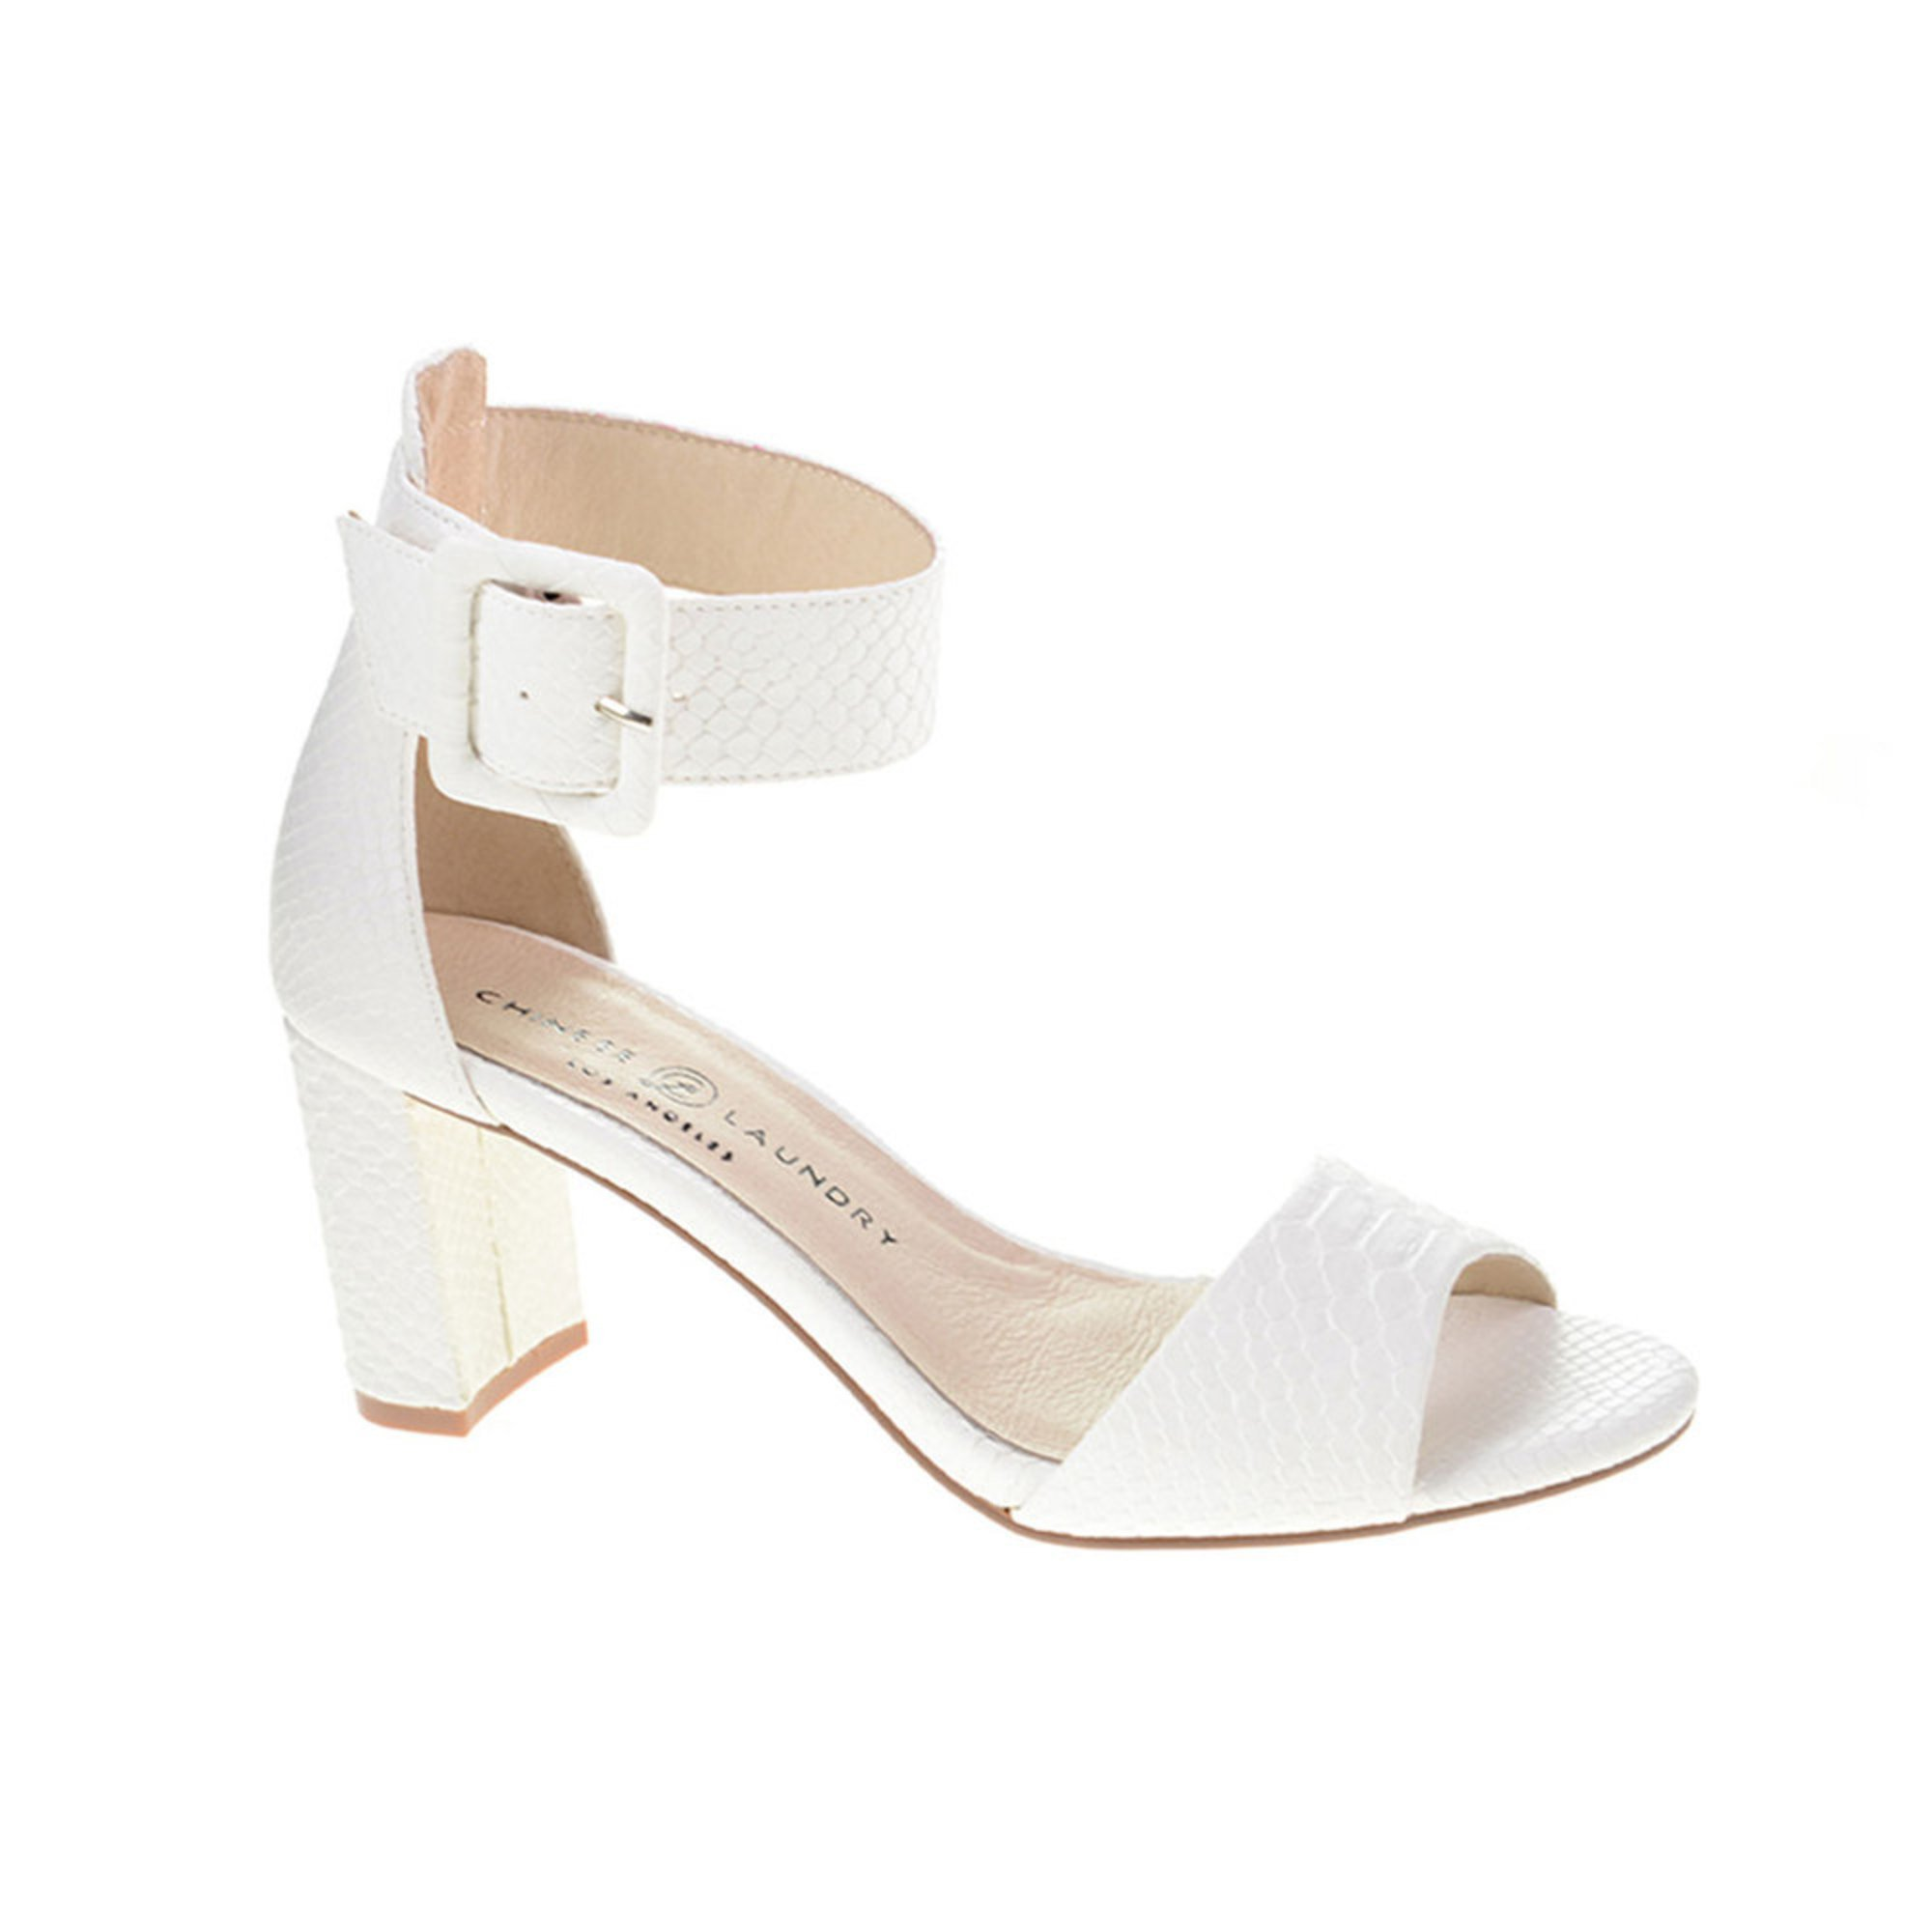 2640a09a365 Chinese Laundry Women's Rumor Ankle Strap Sandal | Women's Heels ...